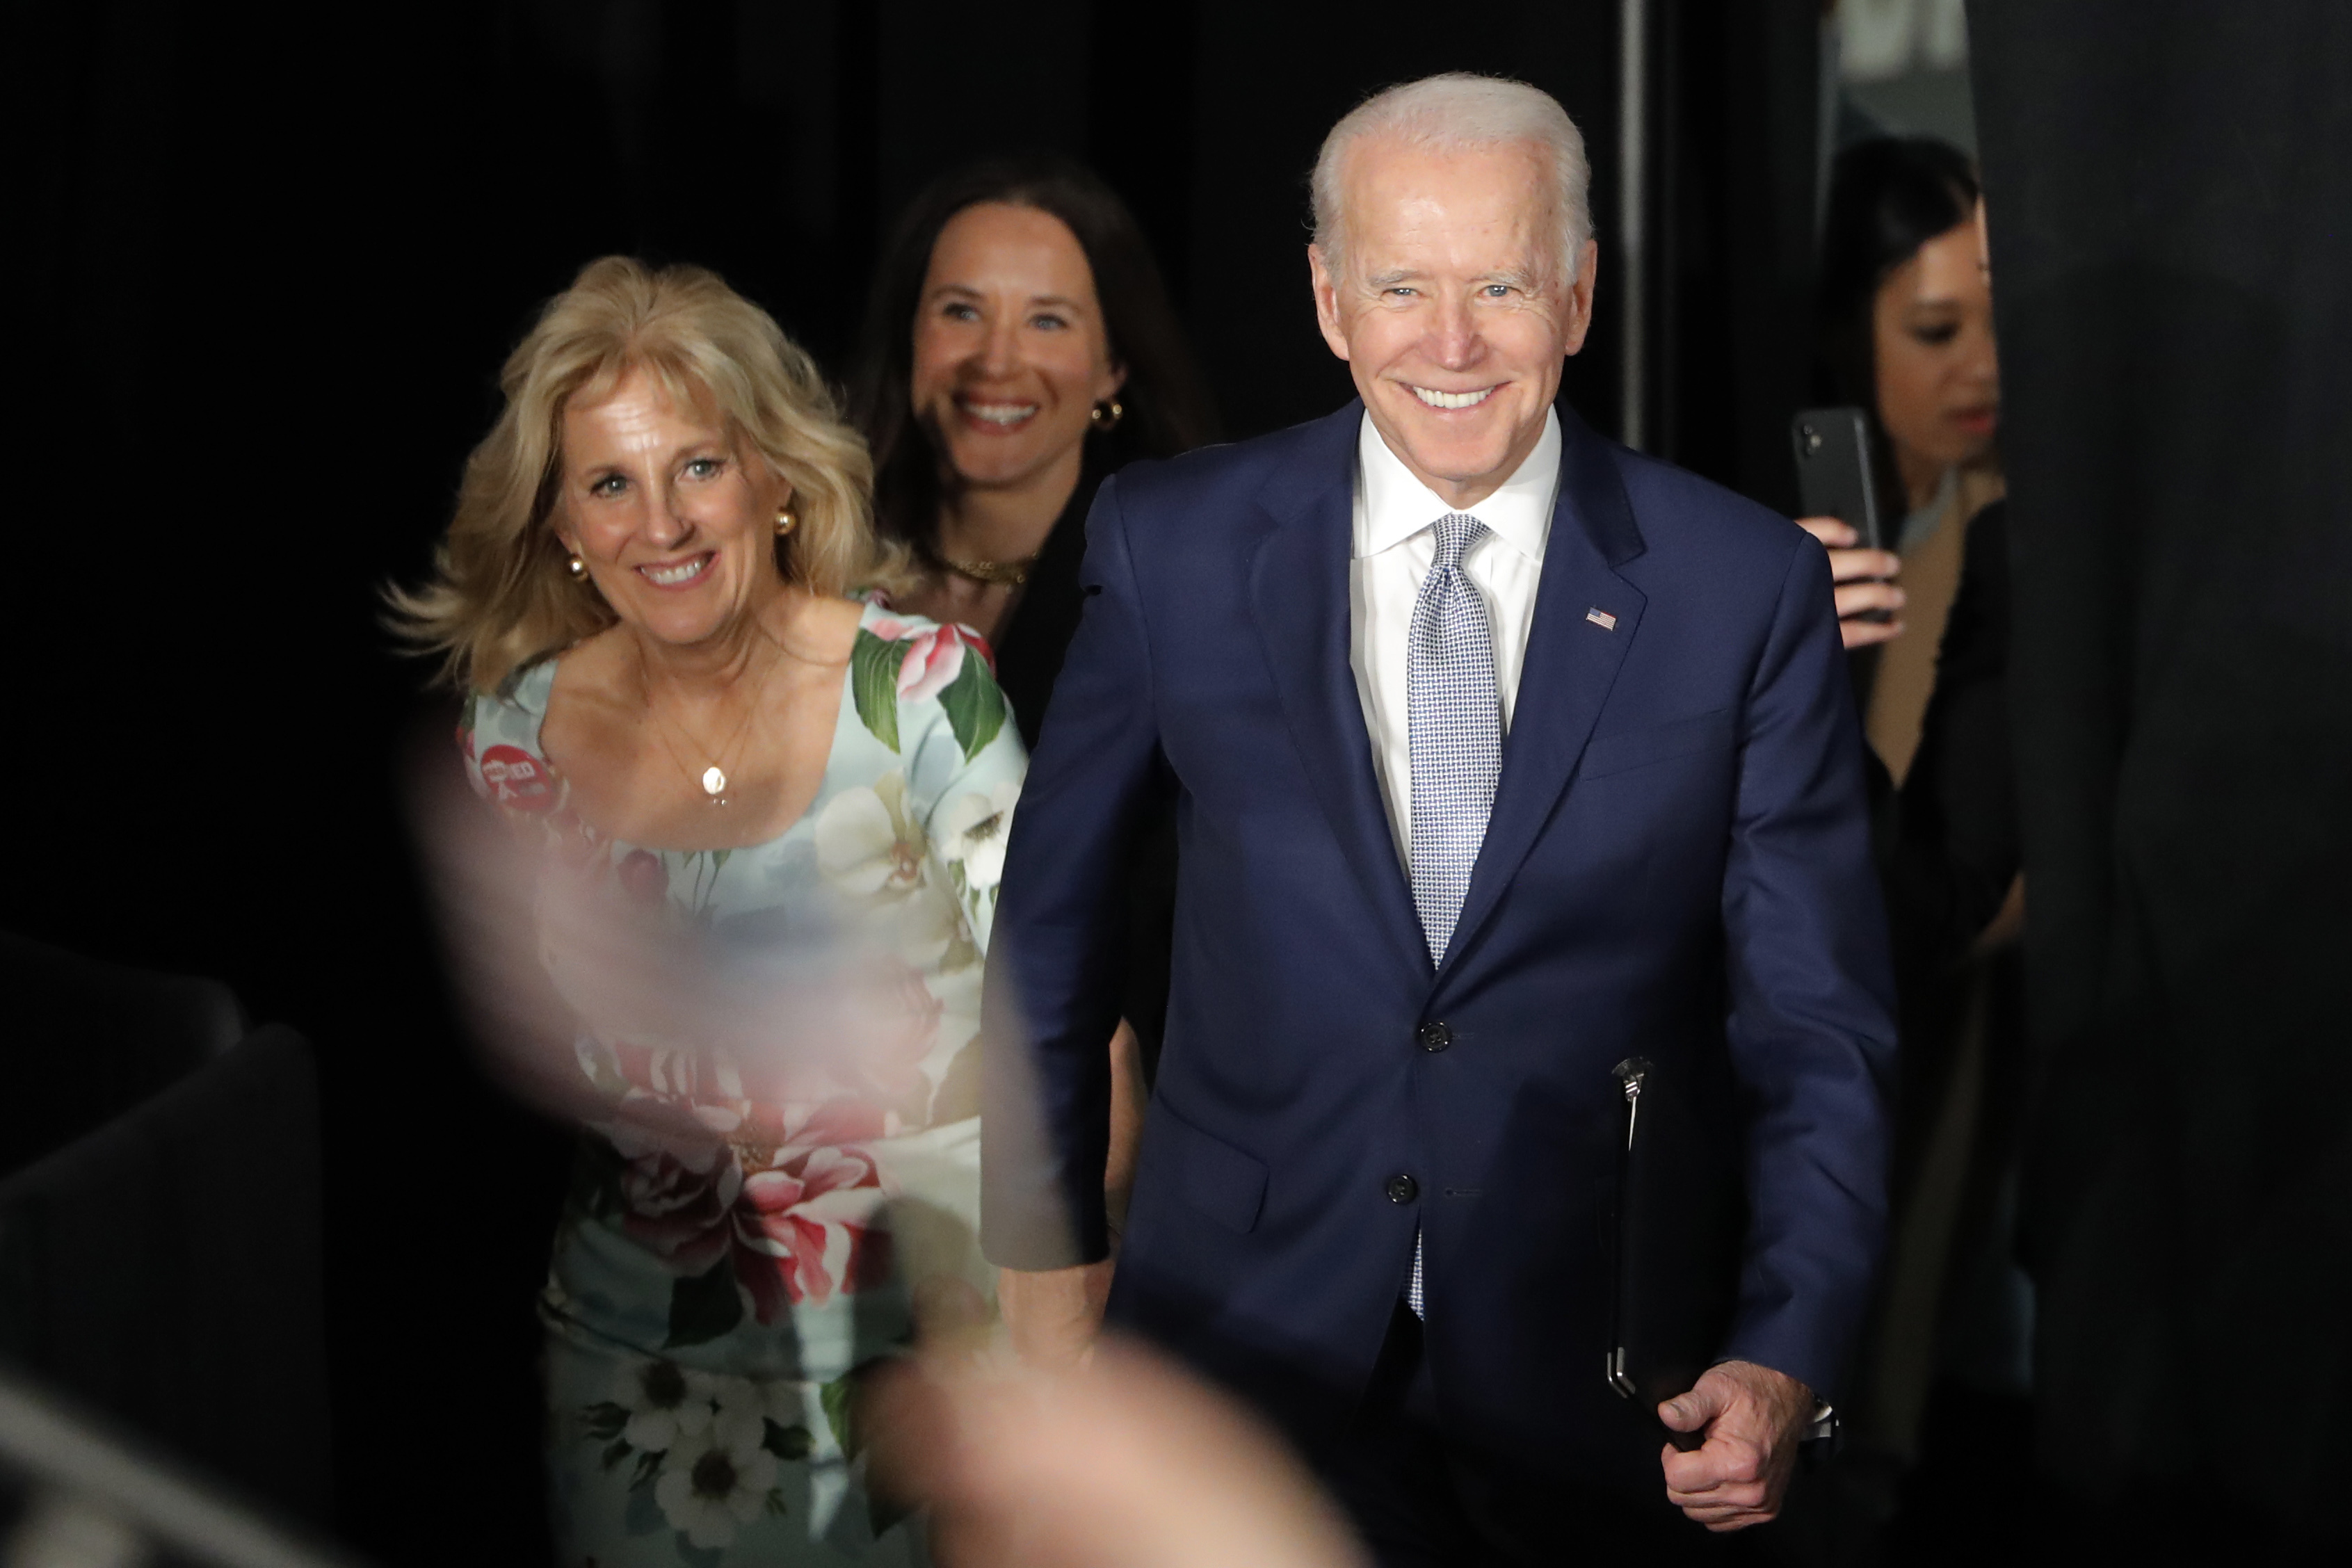 Democratic presidential candidate former Vice President Joe Biden arrives for a primary night election rally in Columbia, S.C., Saturday, February 29.